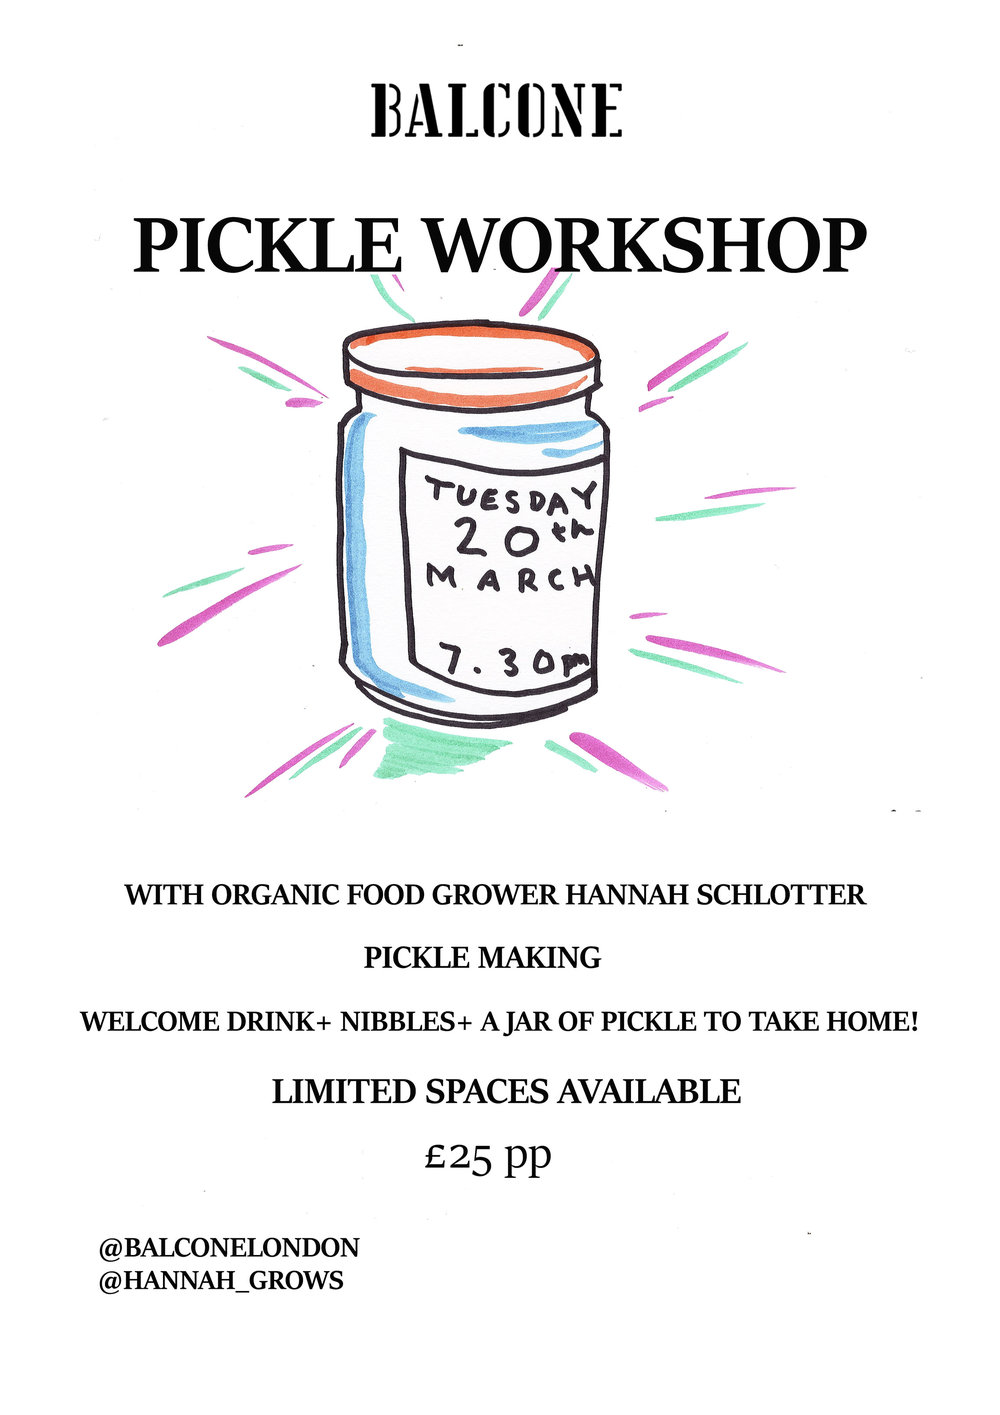 We have an amazing opportunity to learn how to make pickles with a talented organic food grower, there are limited spaces for this event so please RSVP to our email.